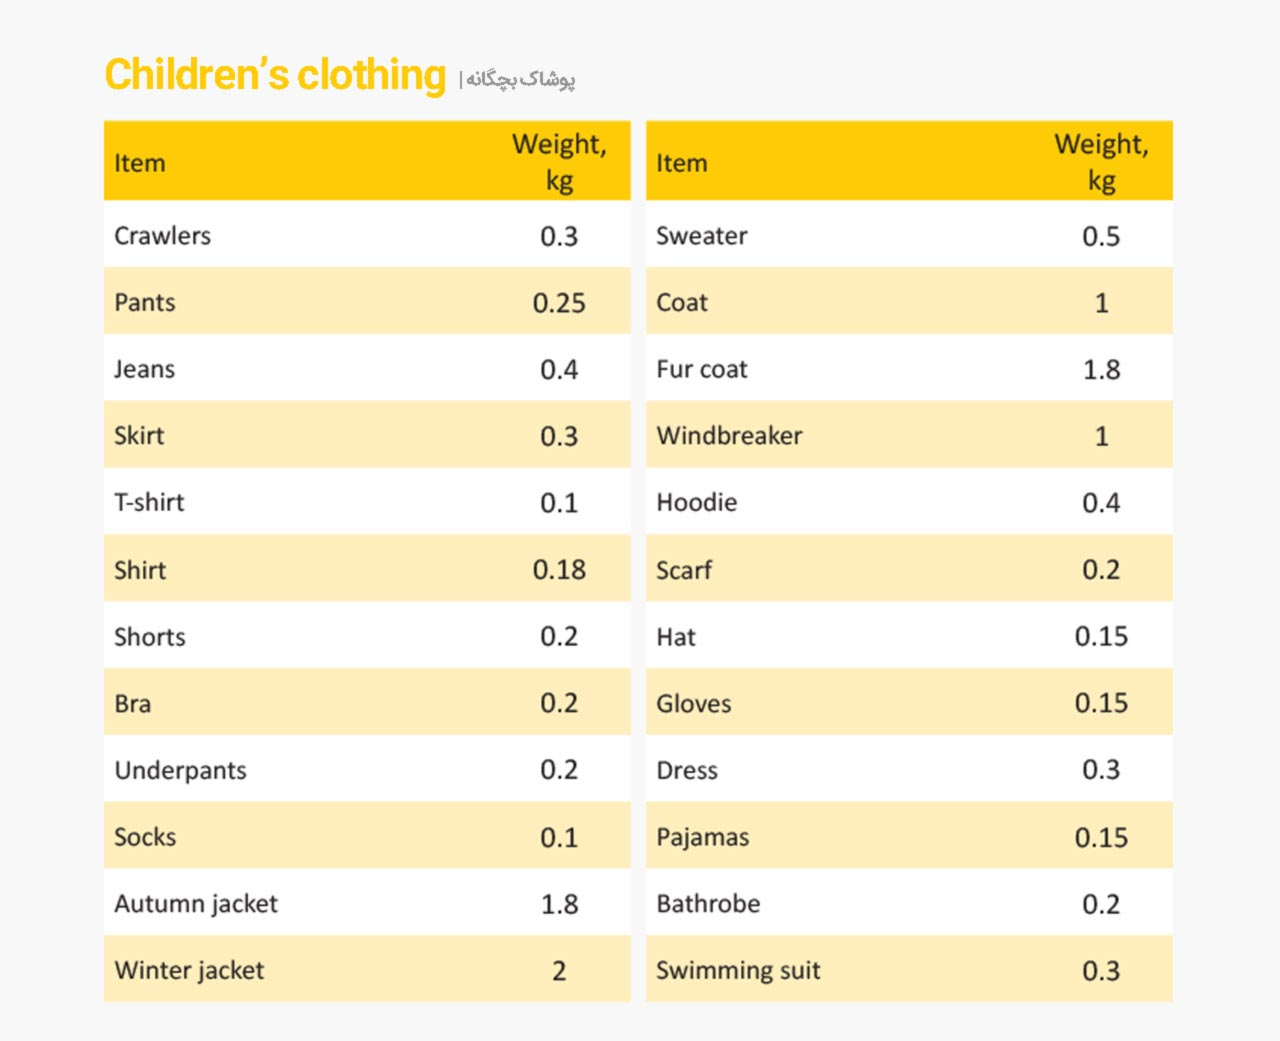 Children's-clothing